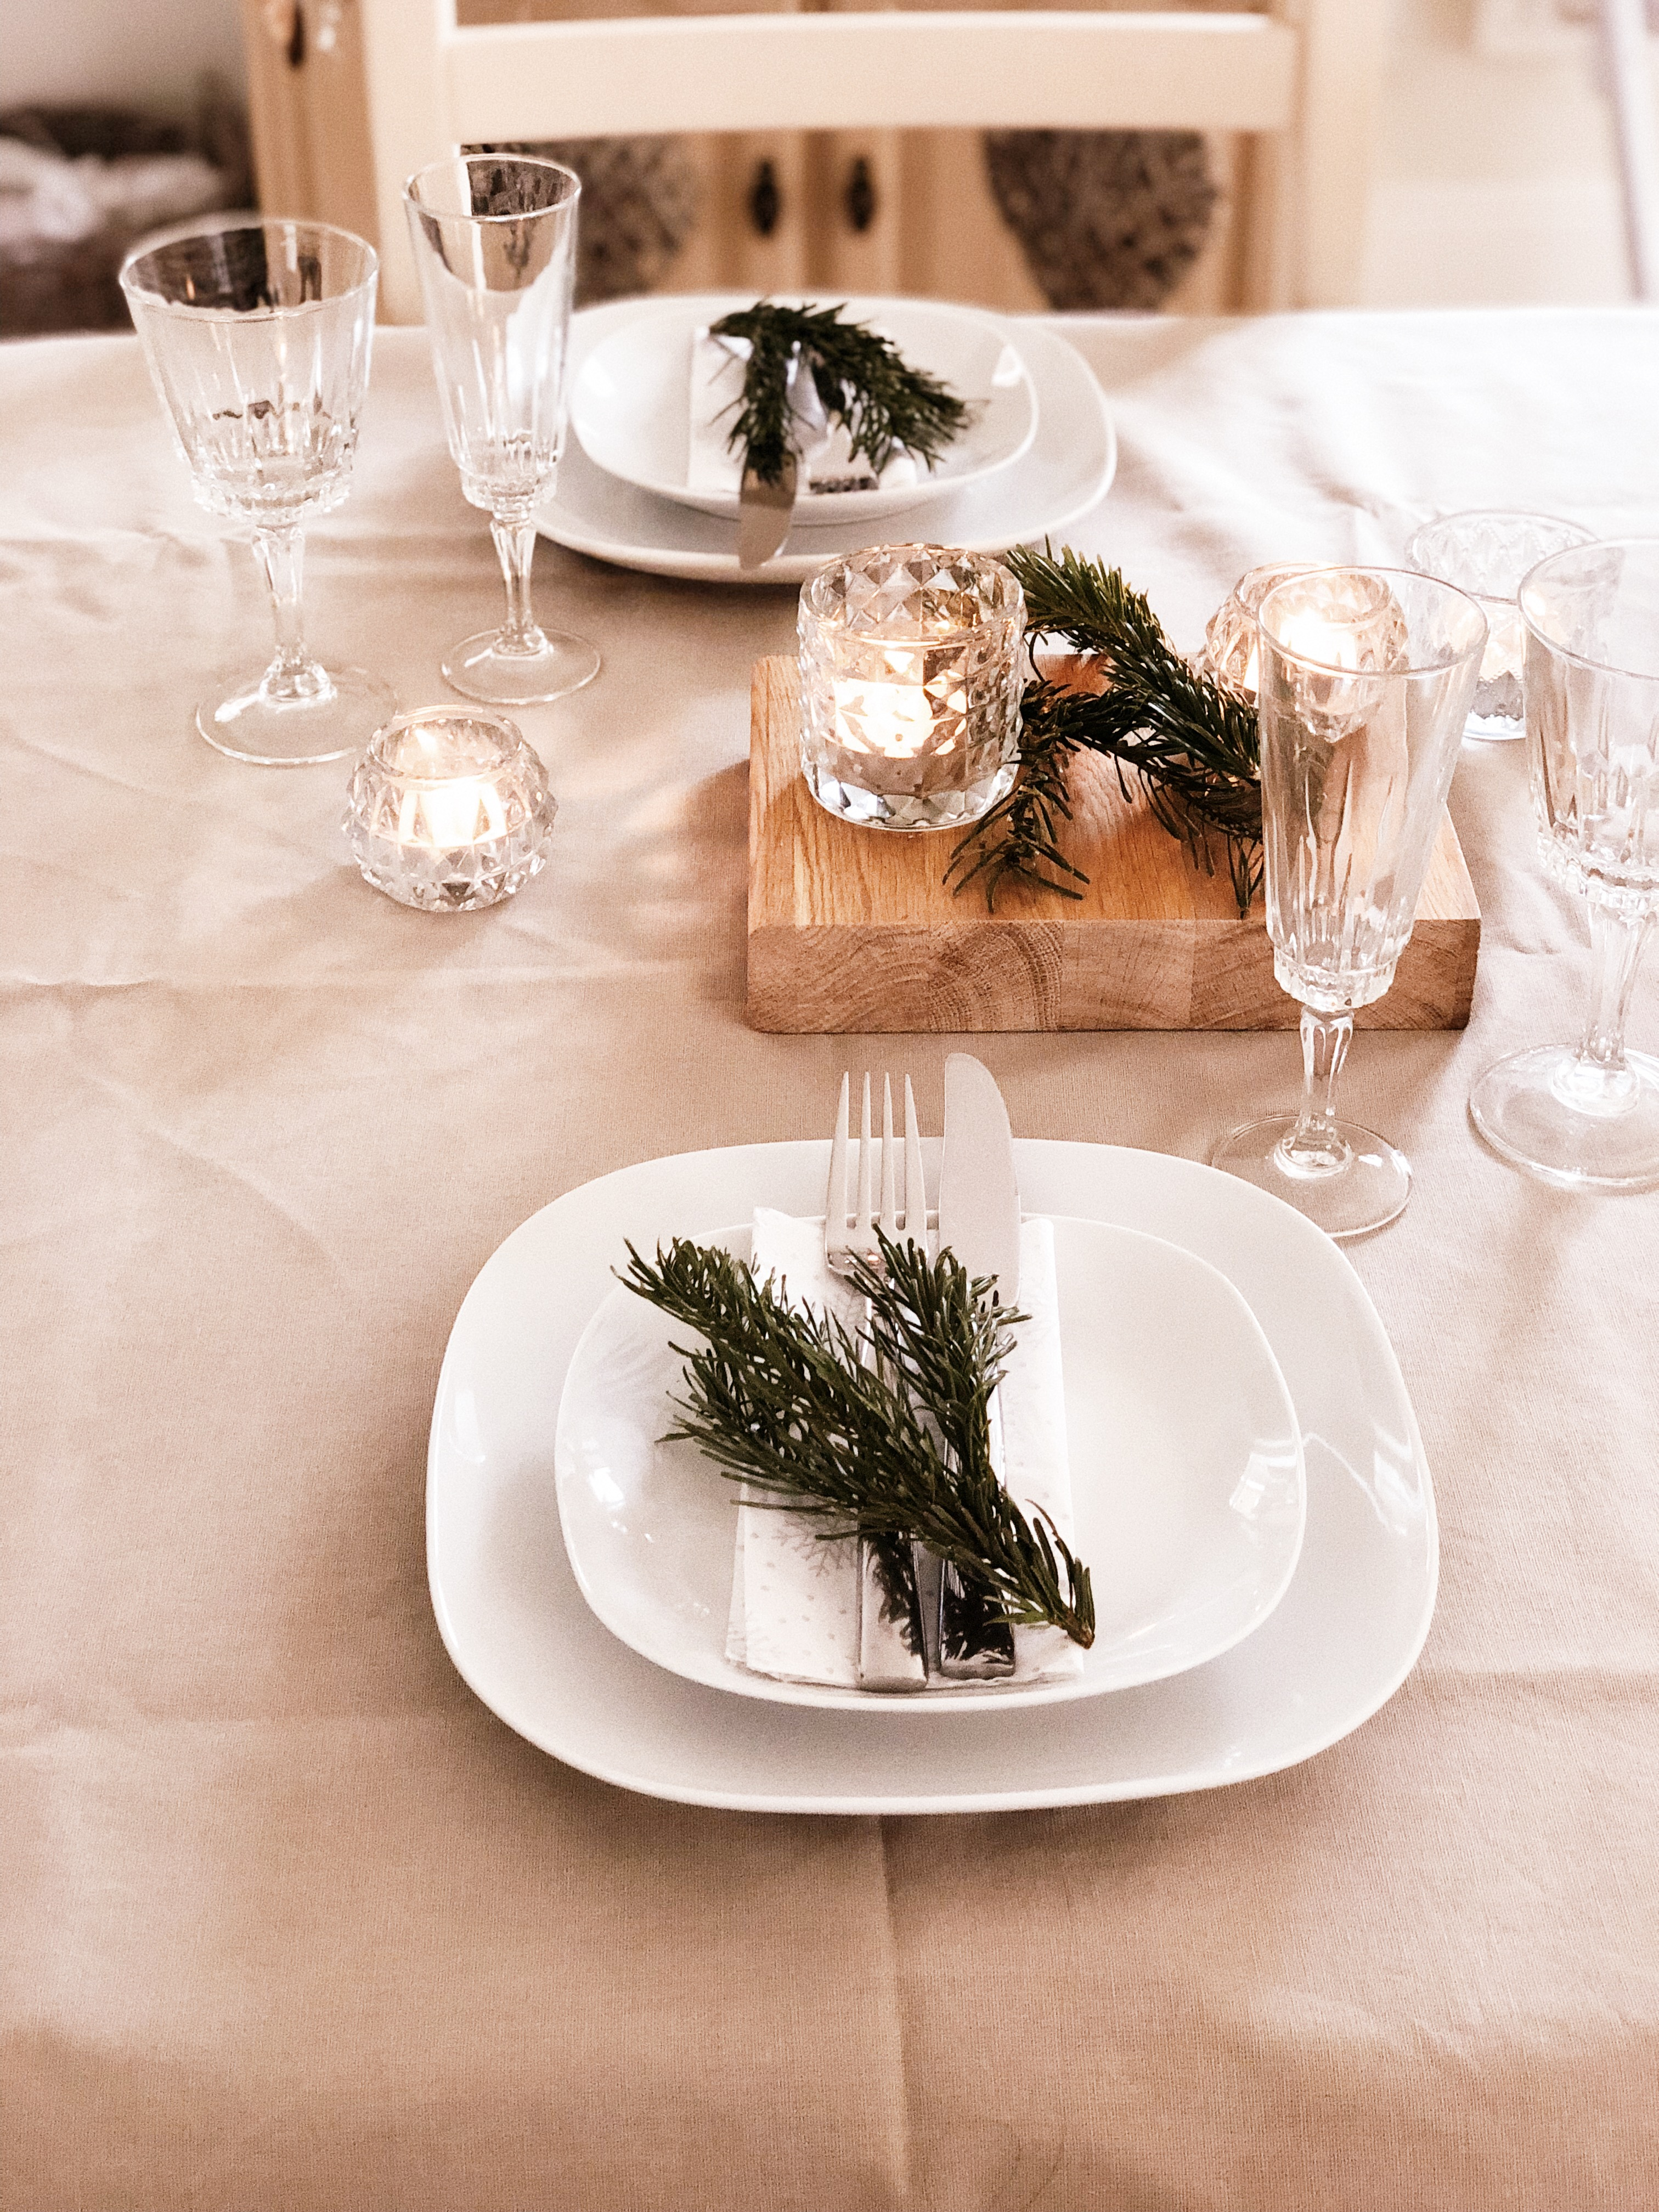 elegant table styling, crockery and glassware